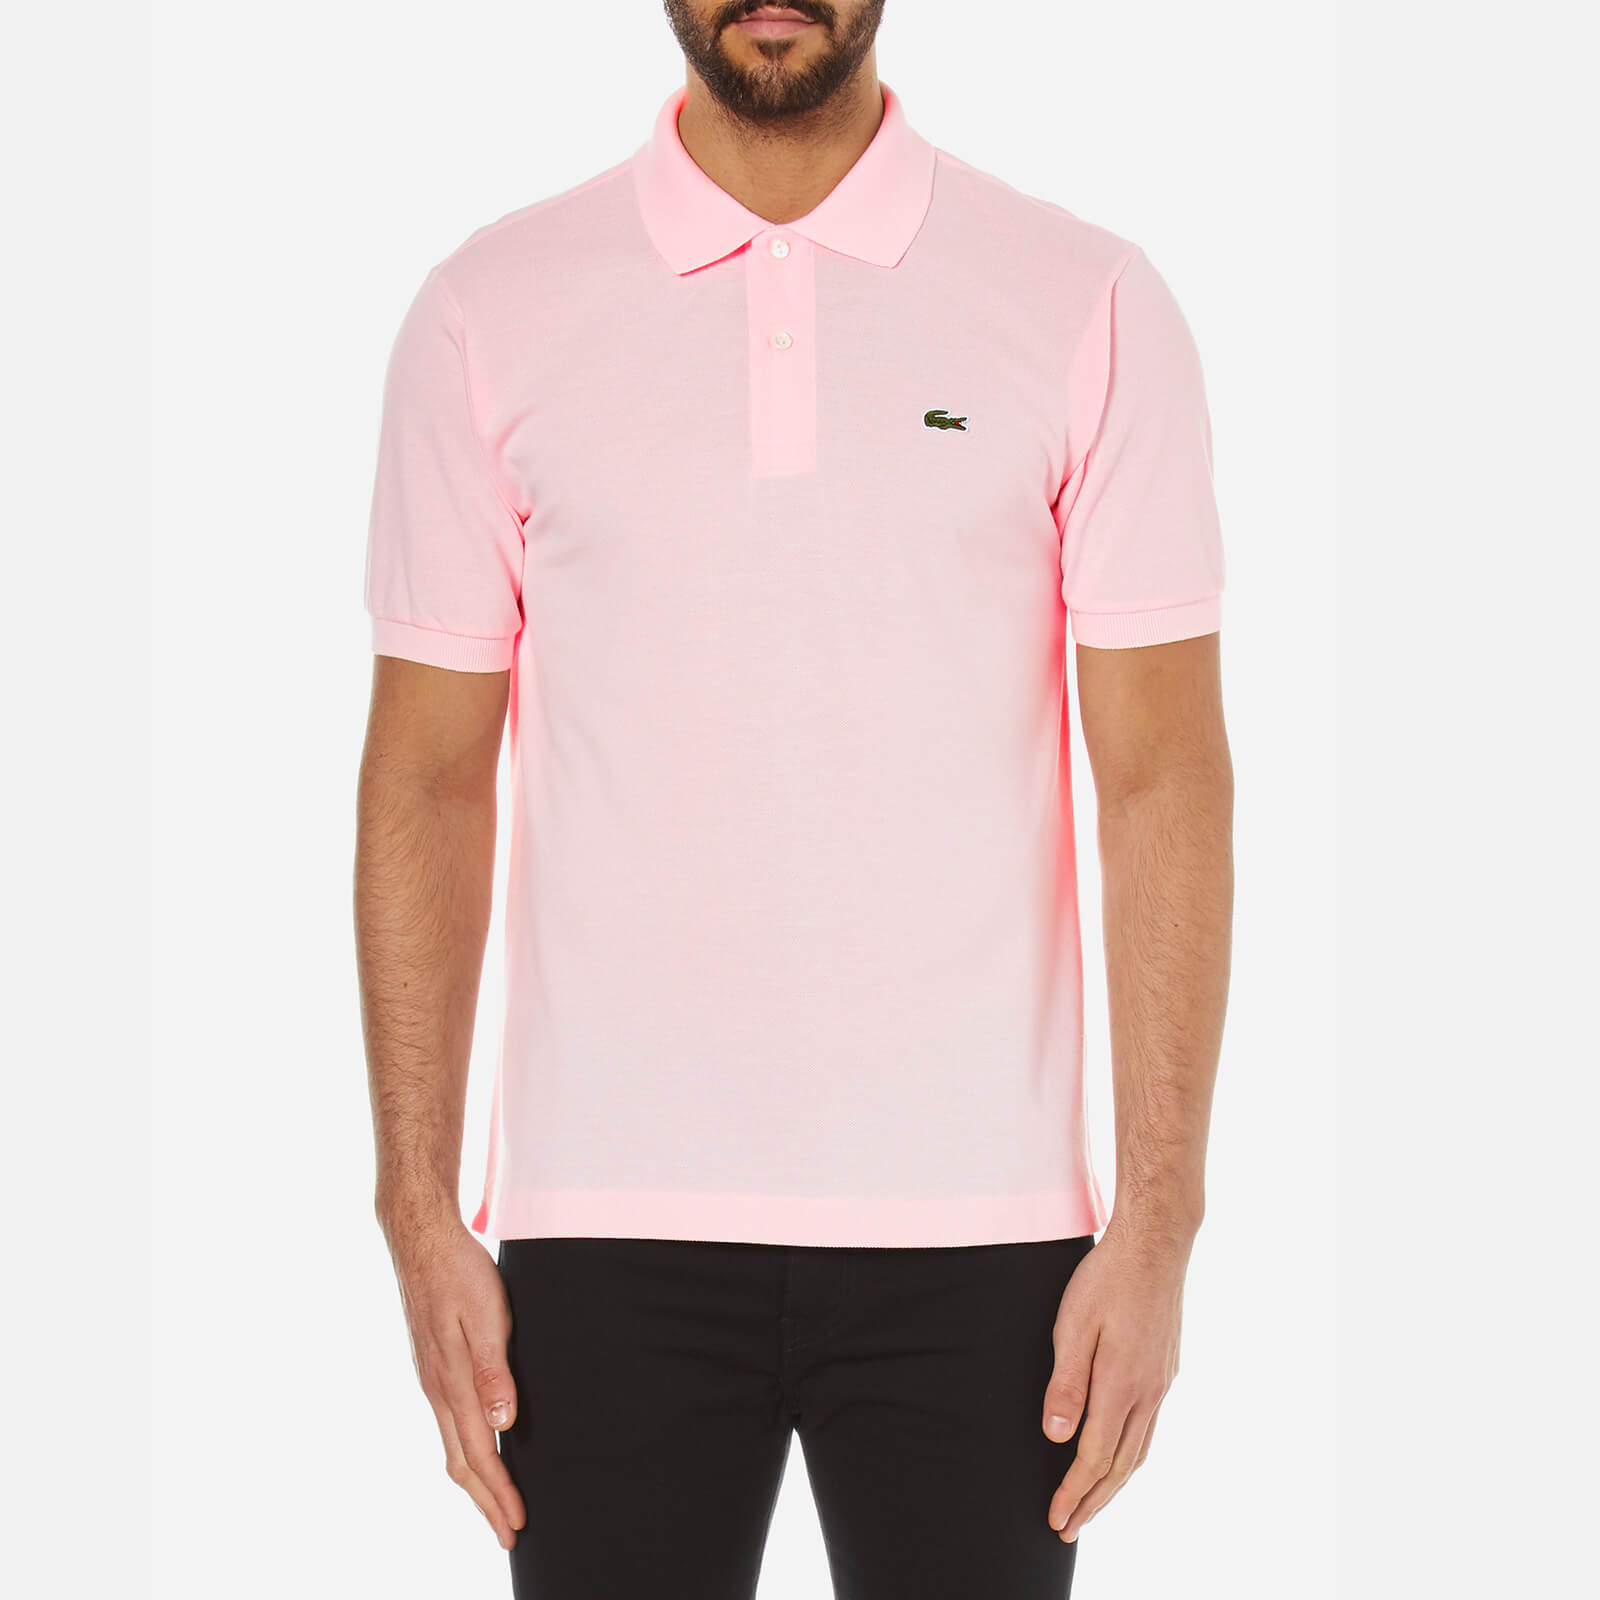 c2897235 Men's Designer Polo Shirts | Menswear | Online at Coggles